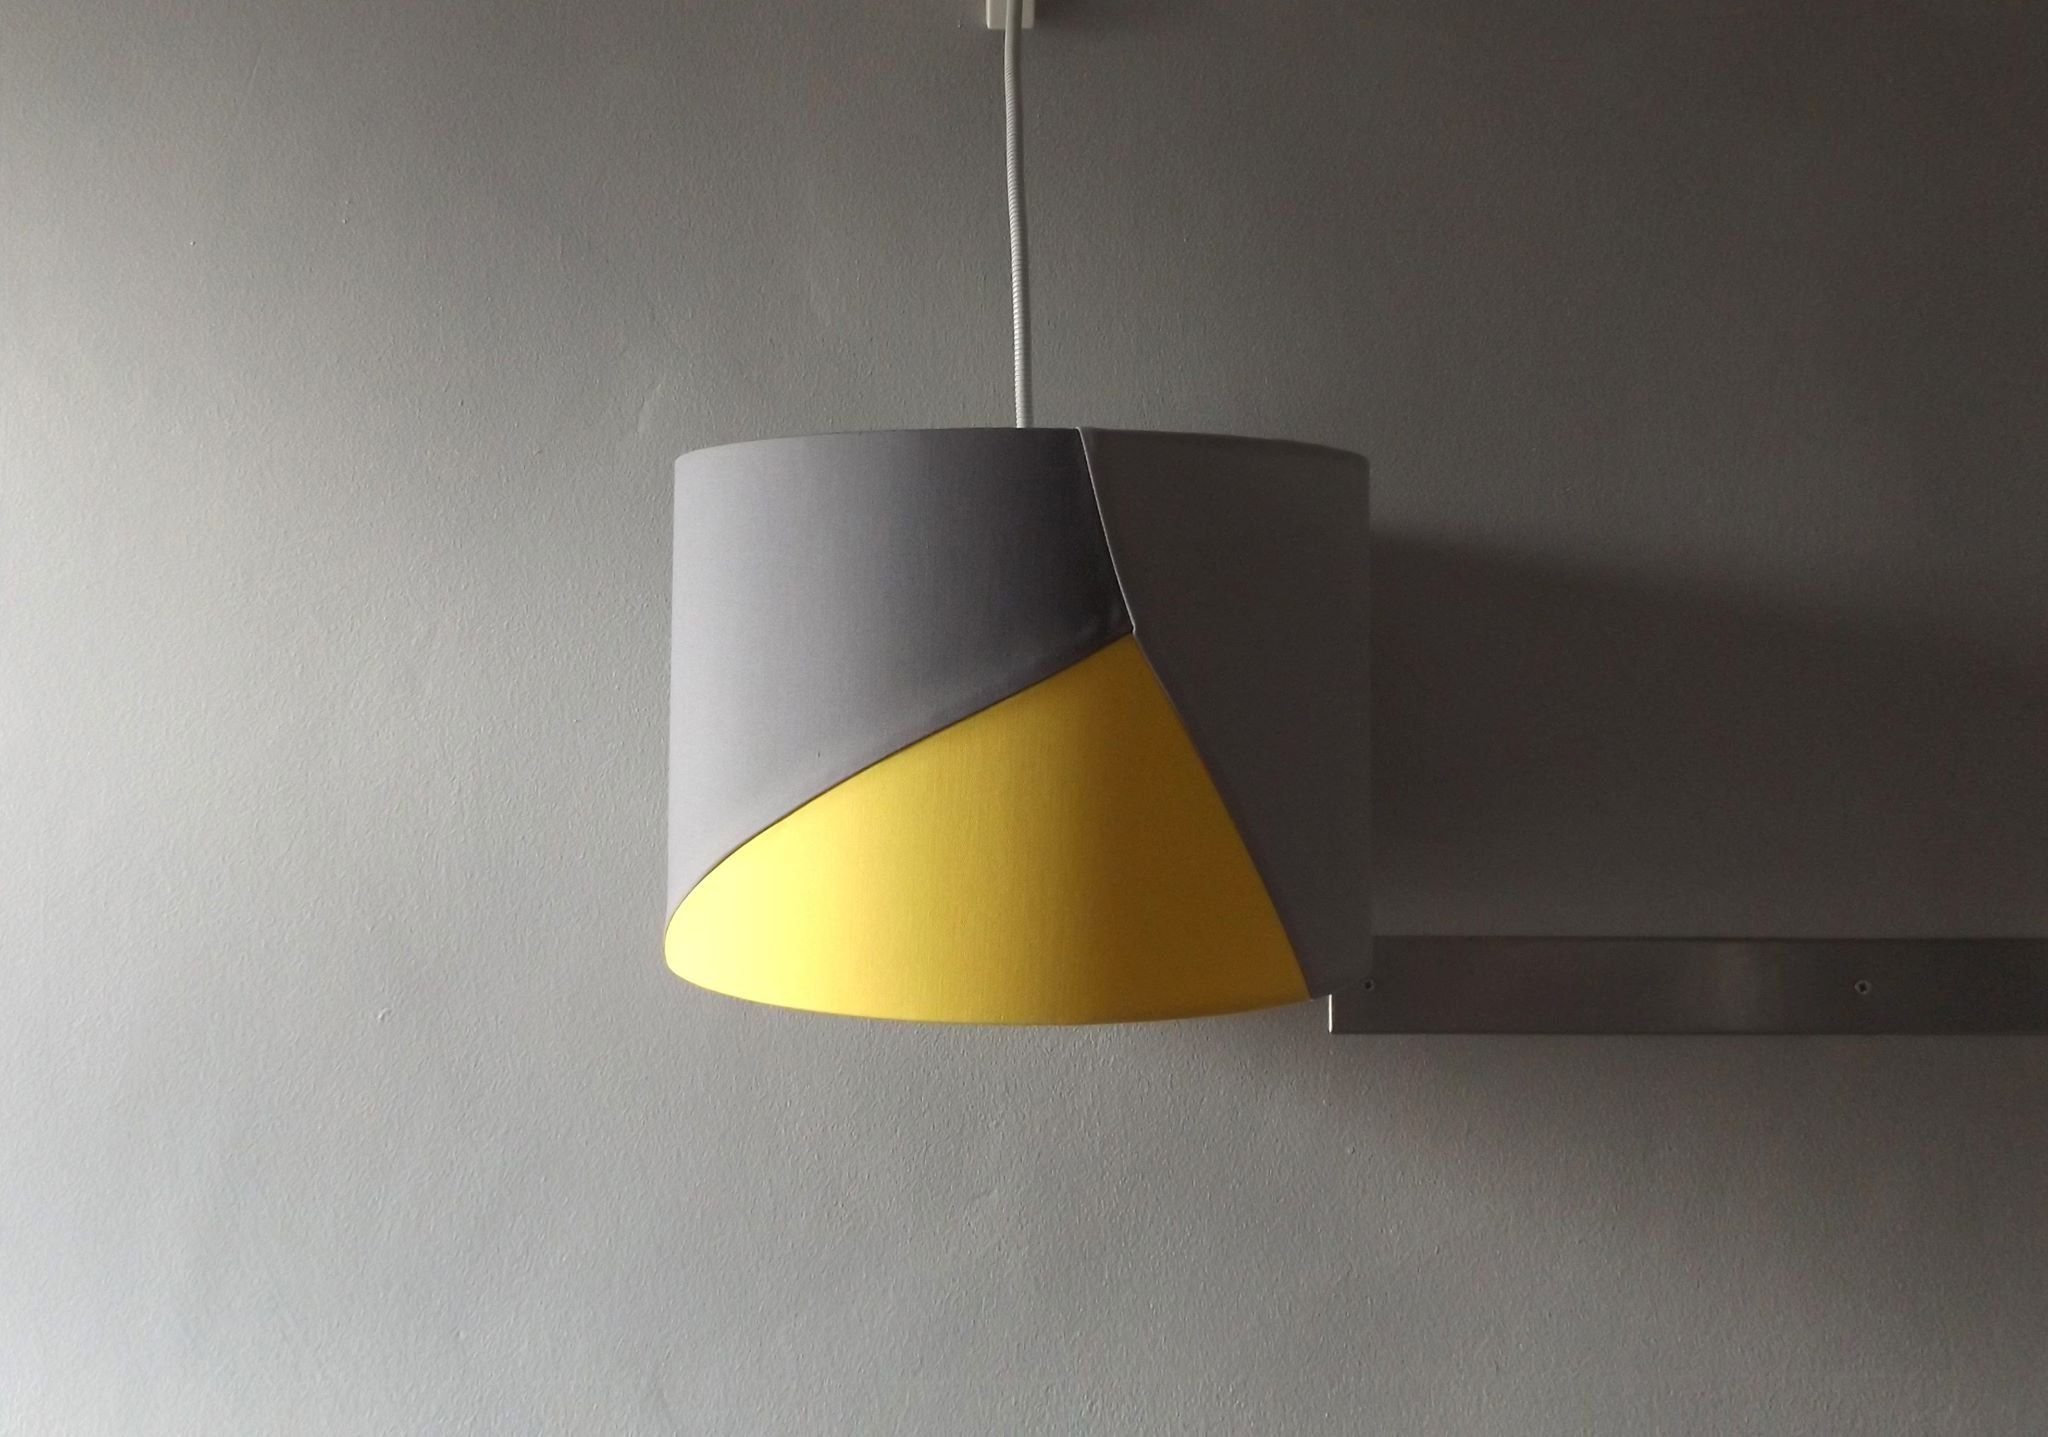 Geometric Patch Lampshade 30cm Drum Lamp Yellow And Grey Lampshade Geometric Decor By Katiemadelampsha Geometric Decor Handmade Lampshades Drum Lampshade